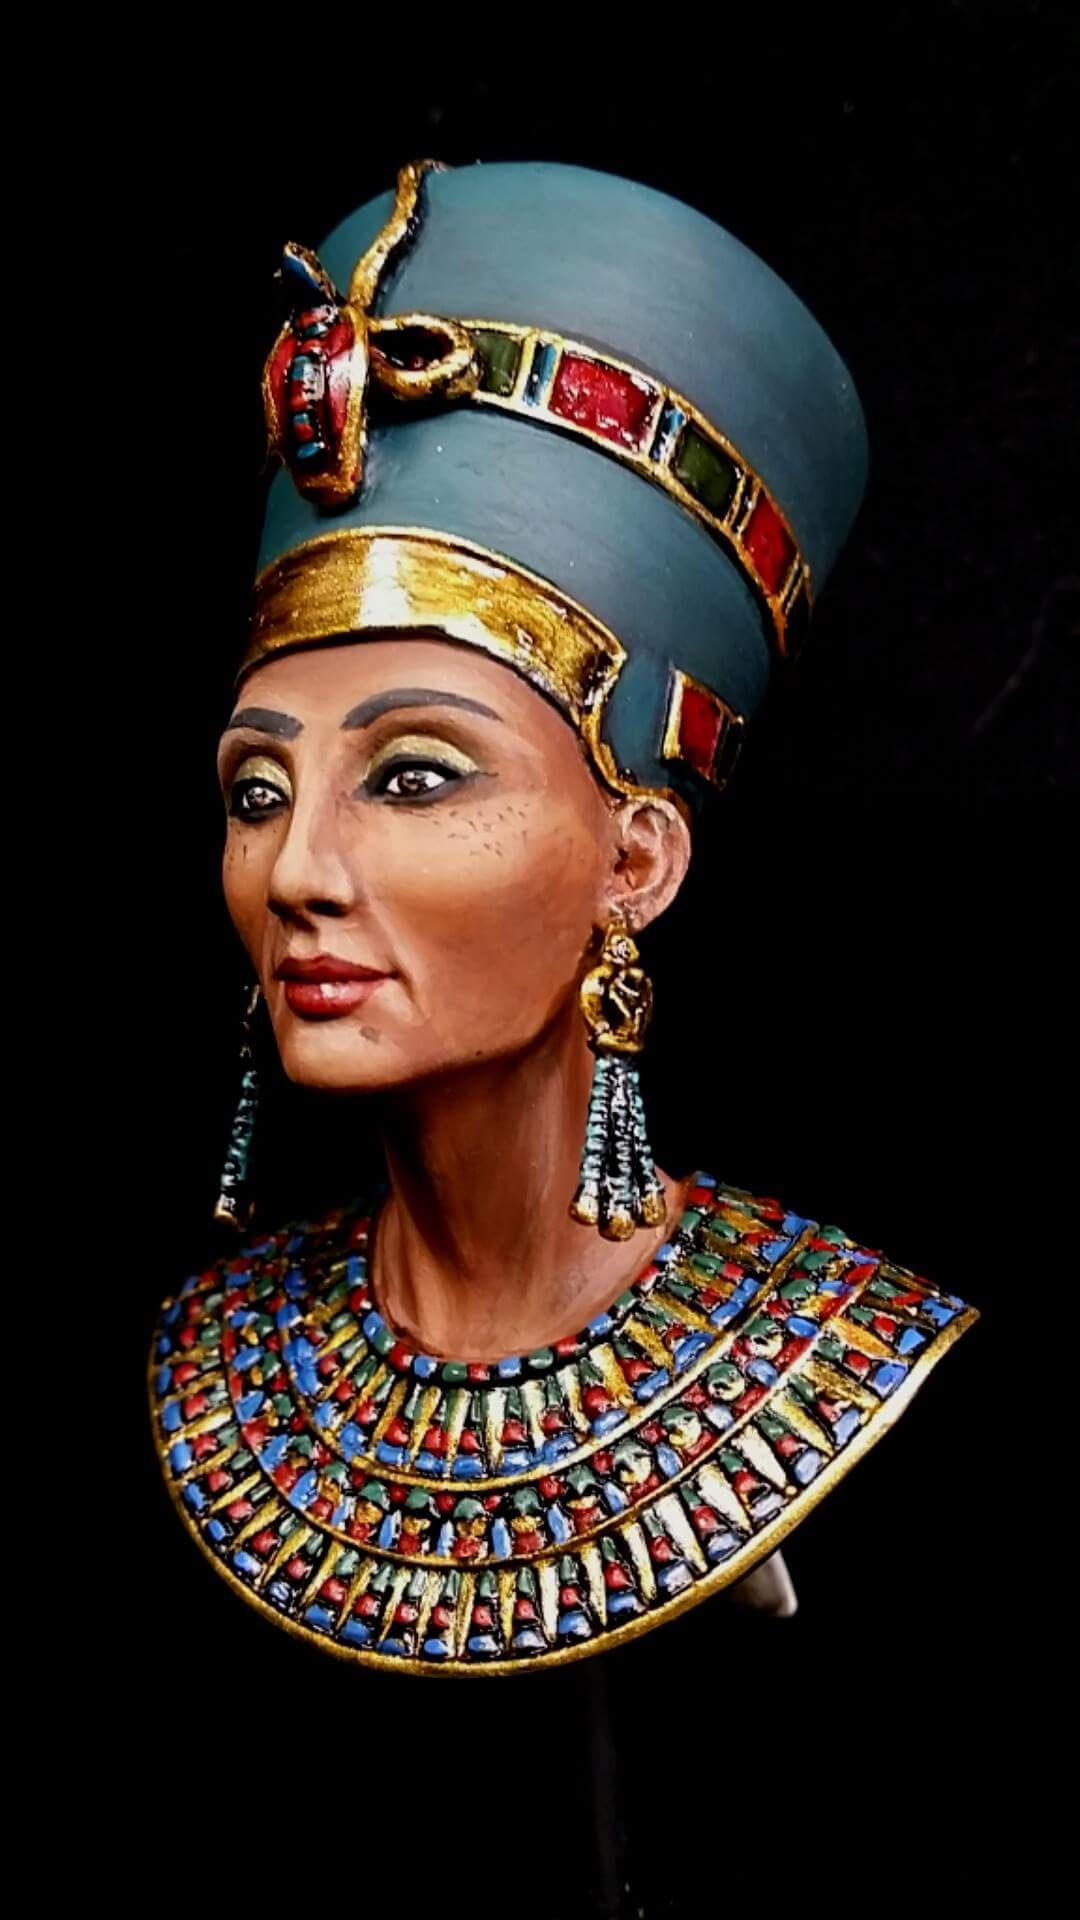 For Sale Sign Picture >> Nefertiti by Costas Rodopoulos · Putty&Paint